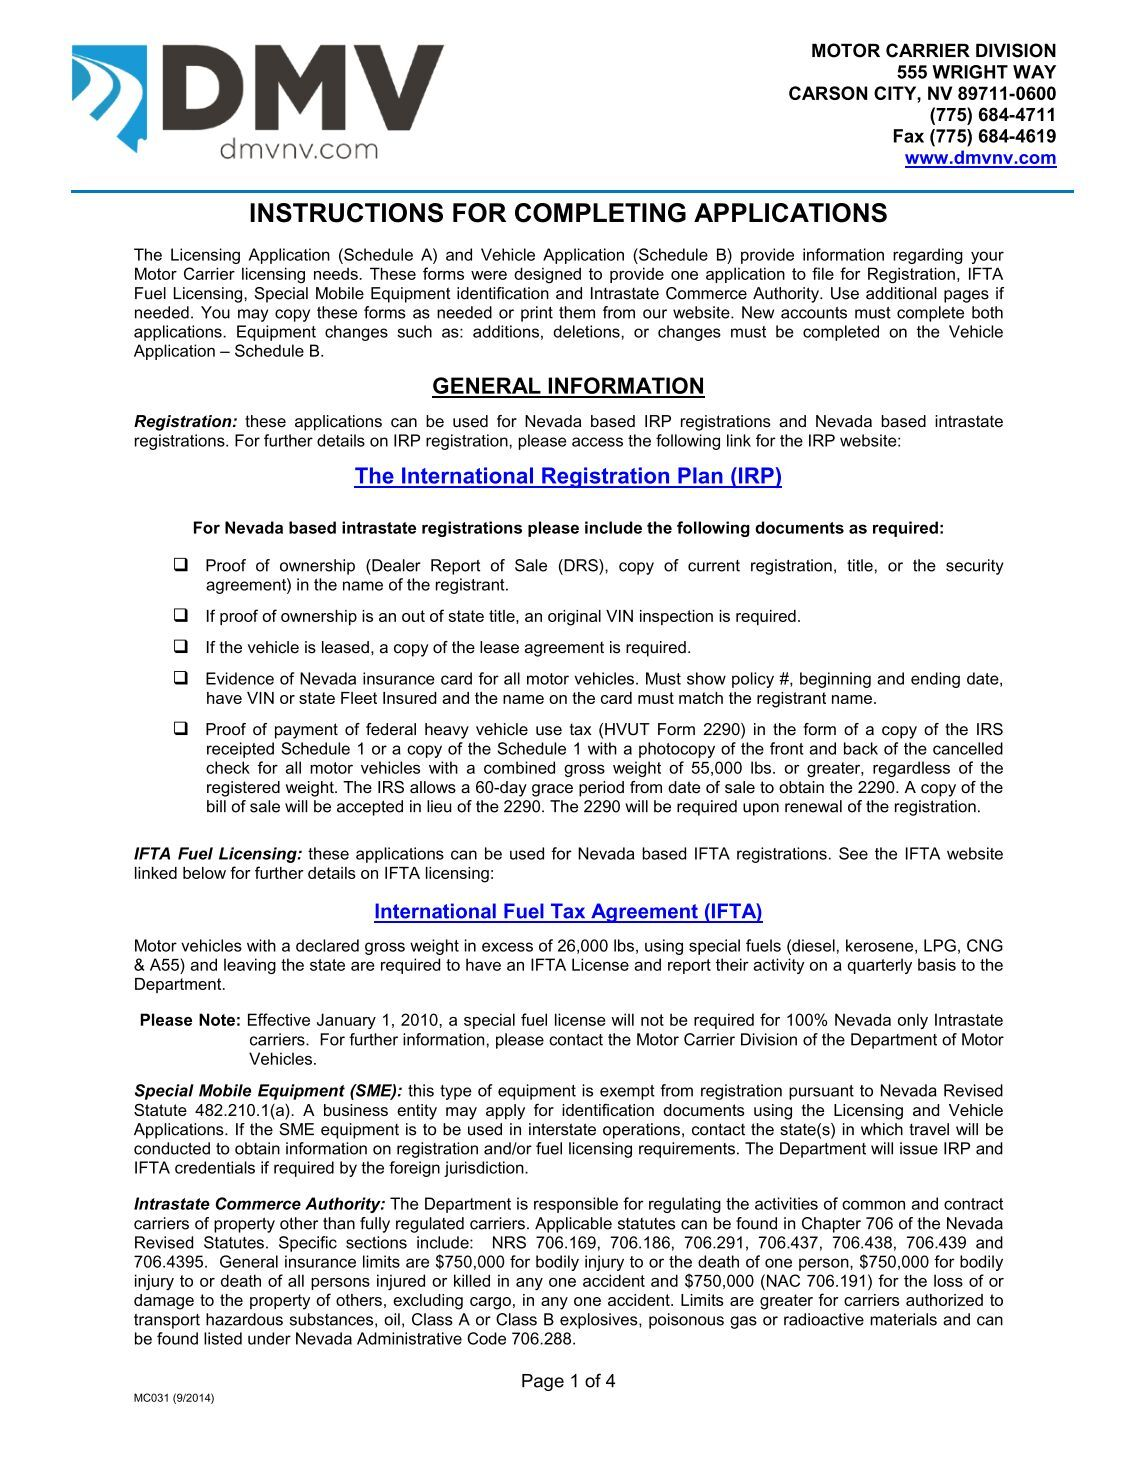 Nevada Department Of Motor Vehicles Registration Renewal